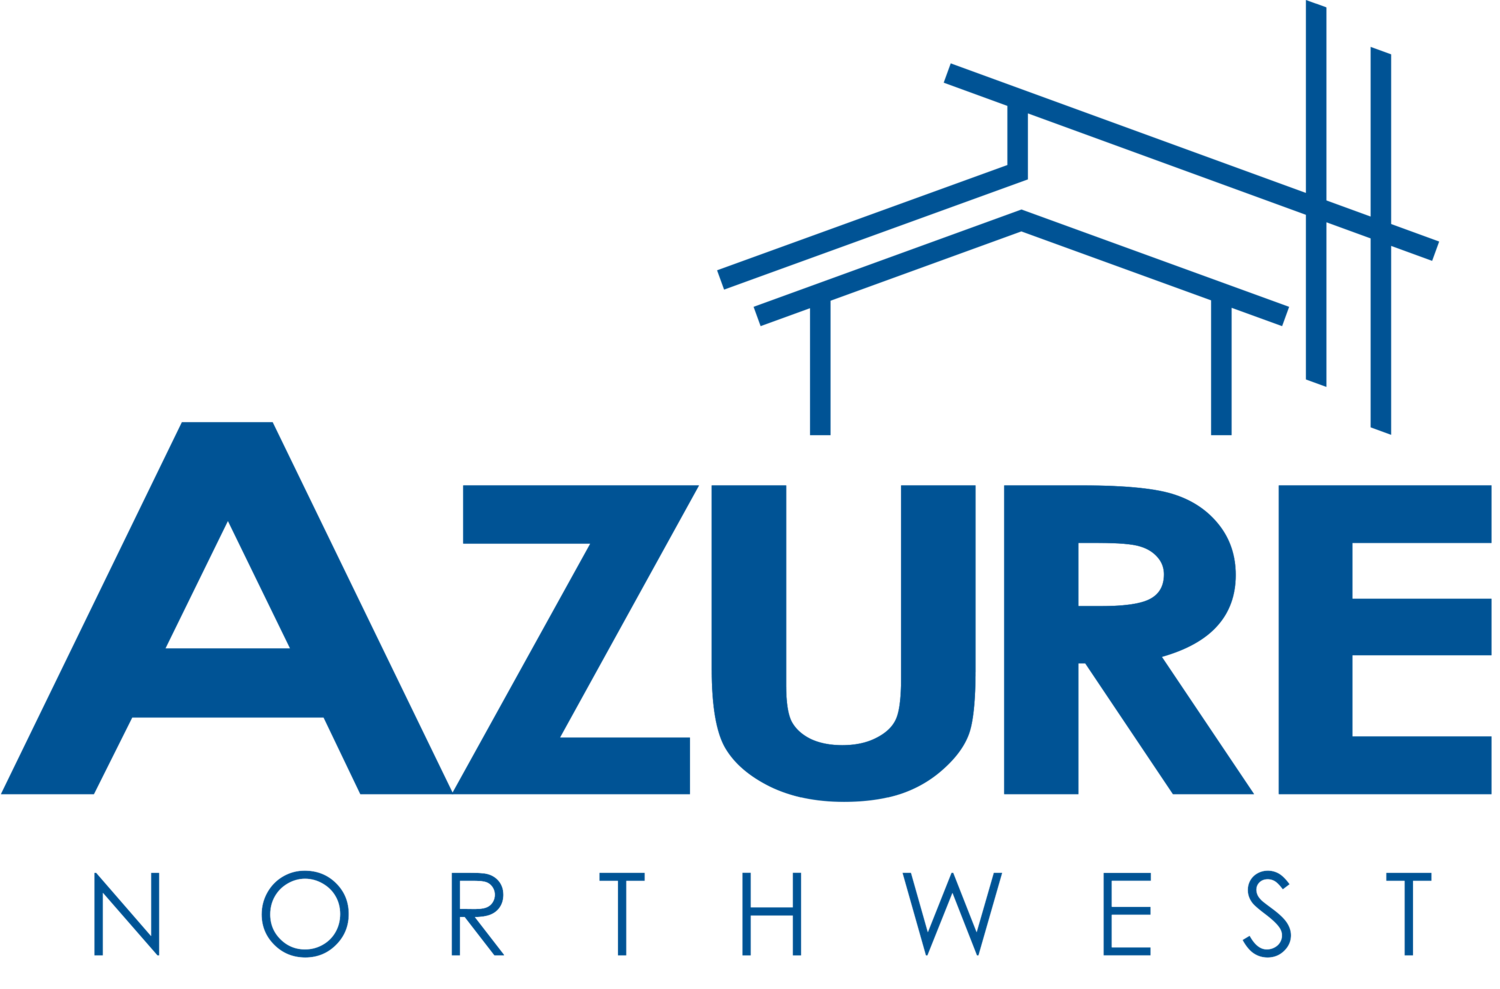 Azure Northwest Homes